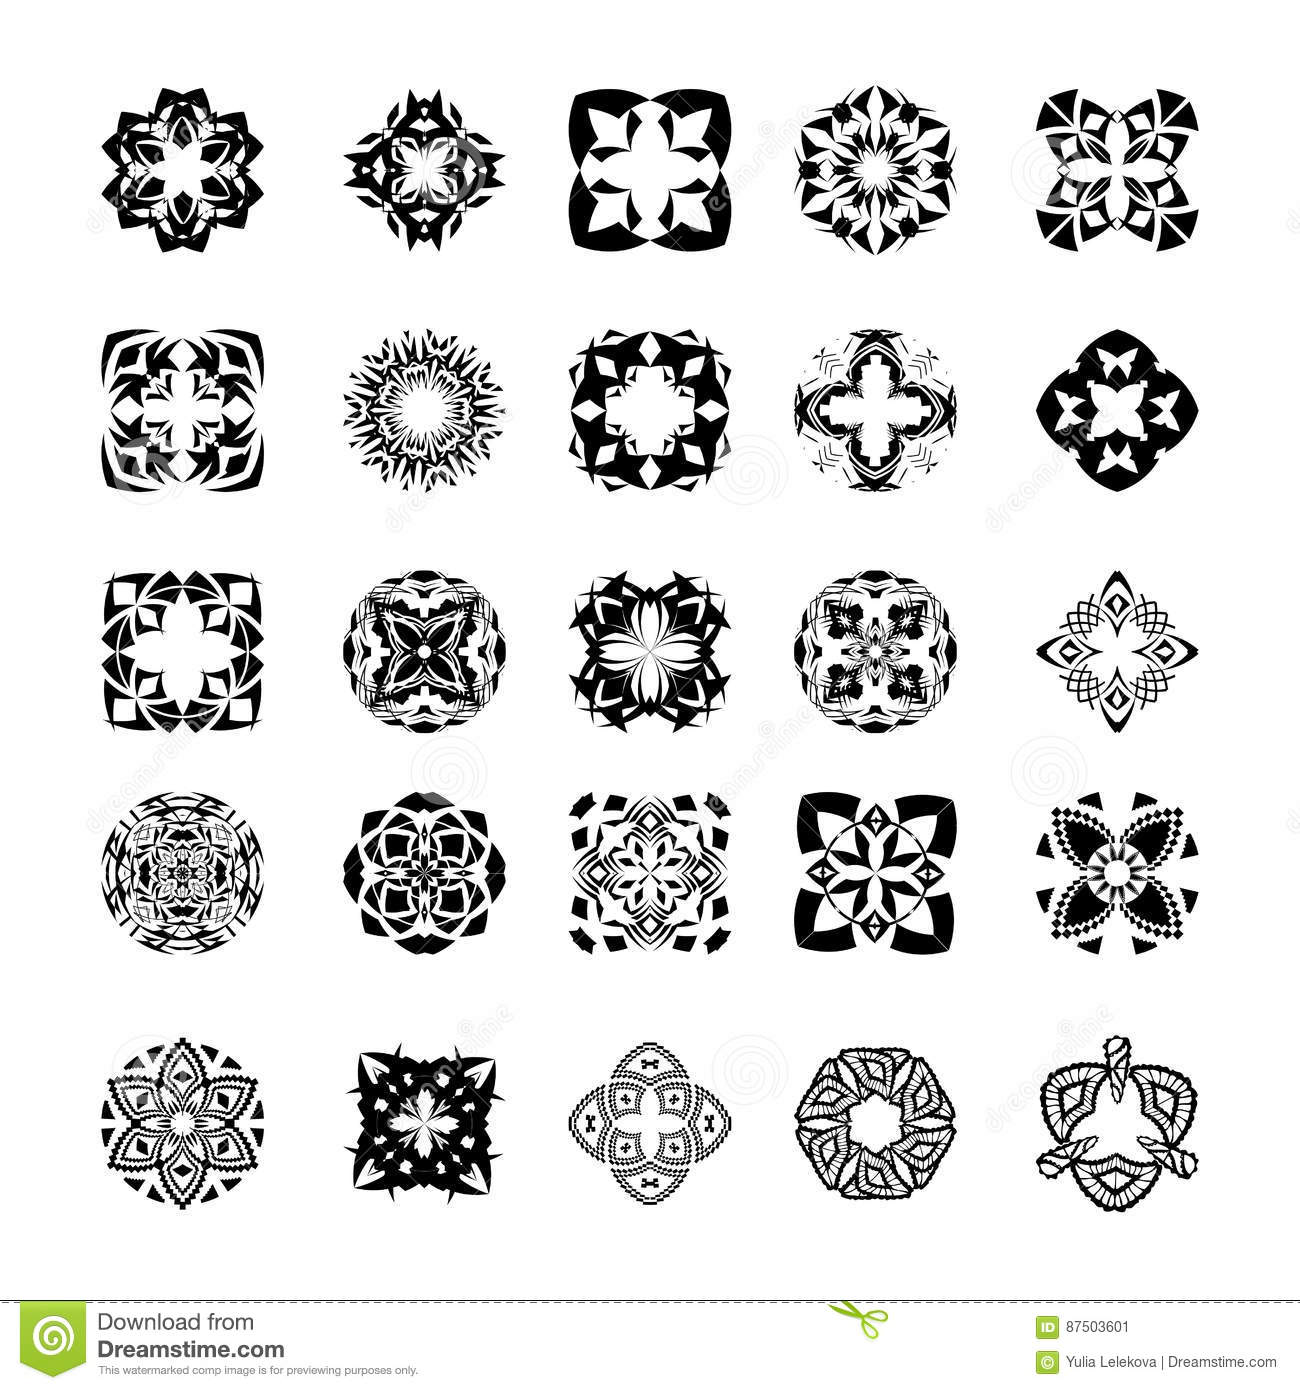 a4109a05a Vector set of tribal black and white decorative patterns for design. Aztec  ornamental style. Ethnic native american indian ornaments